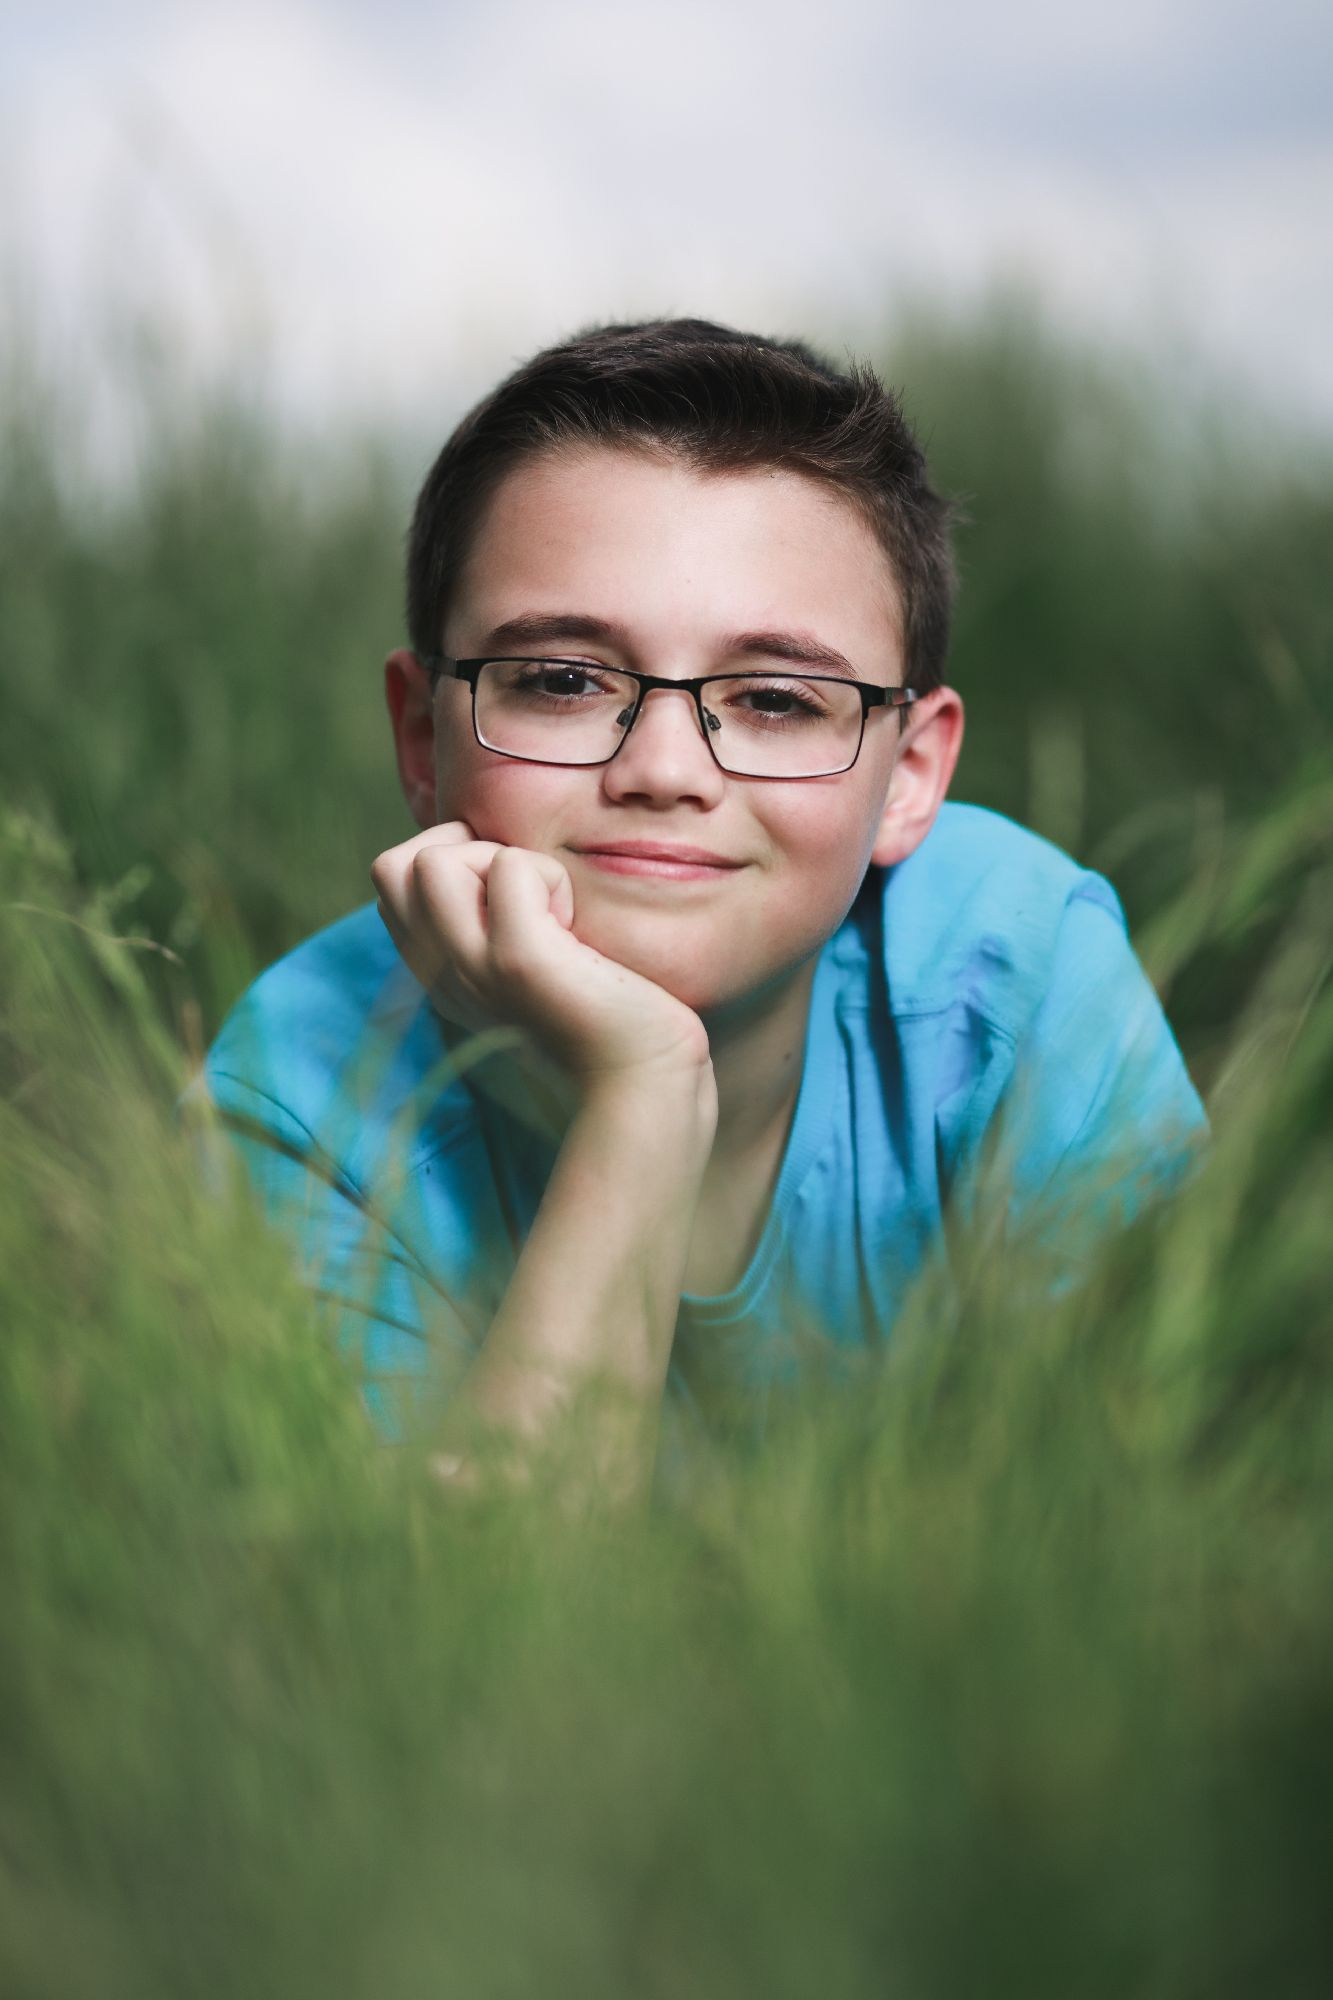 boy laying in long grass